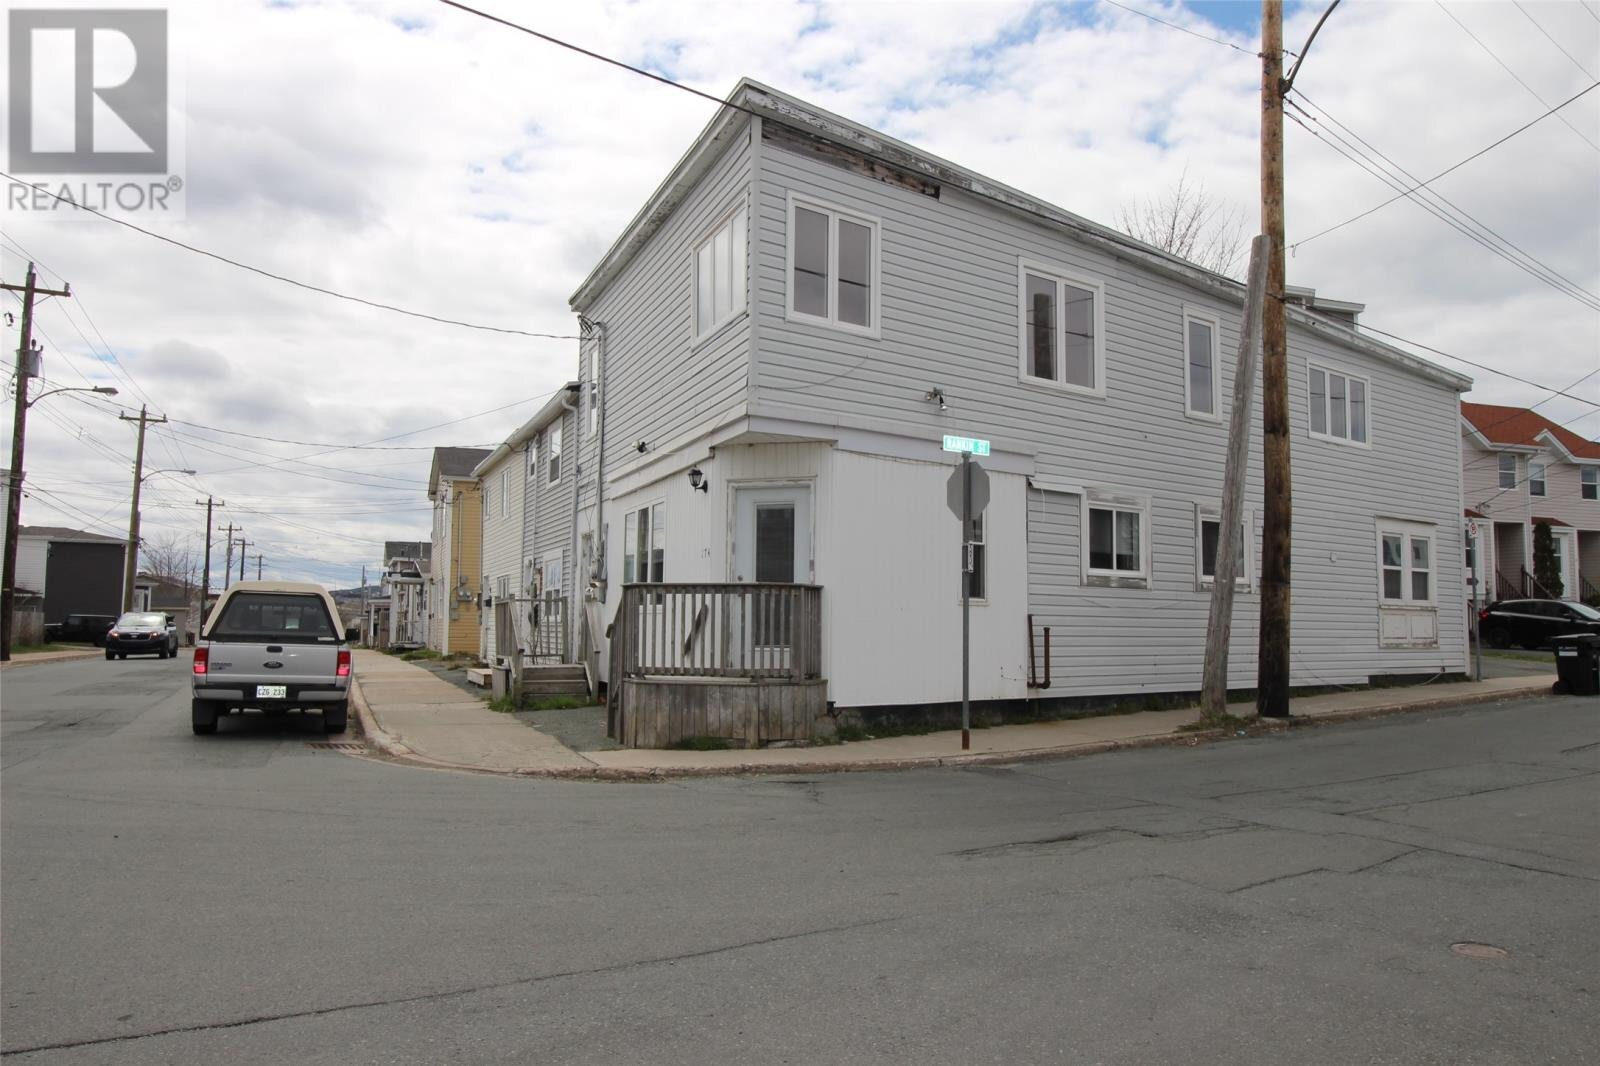 House for sale at 174 Merrymeeting Rd St. John's Newfoundland - MLS: 1223691